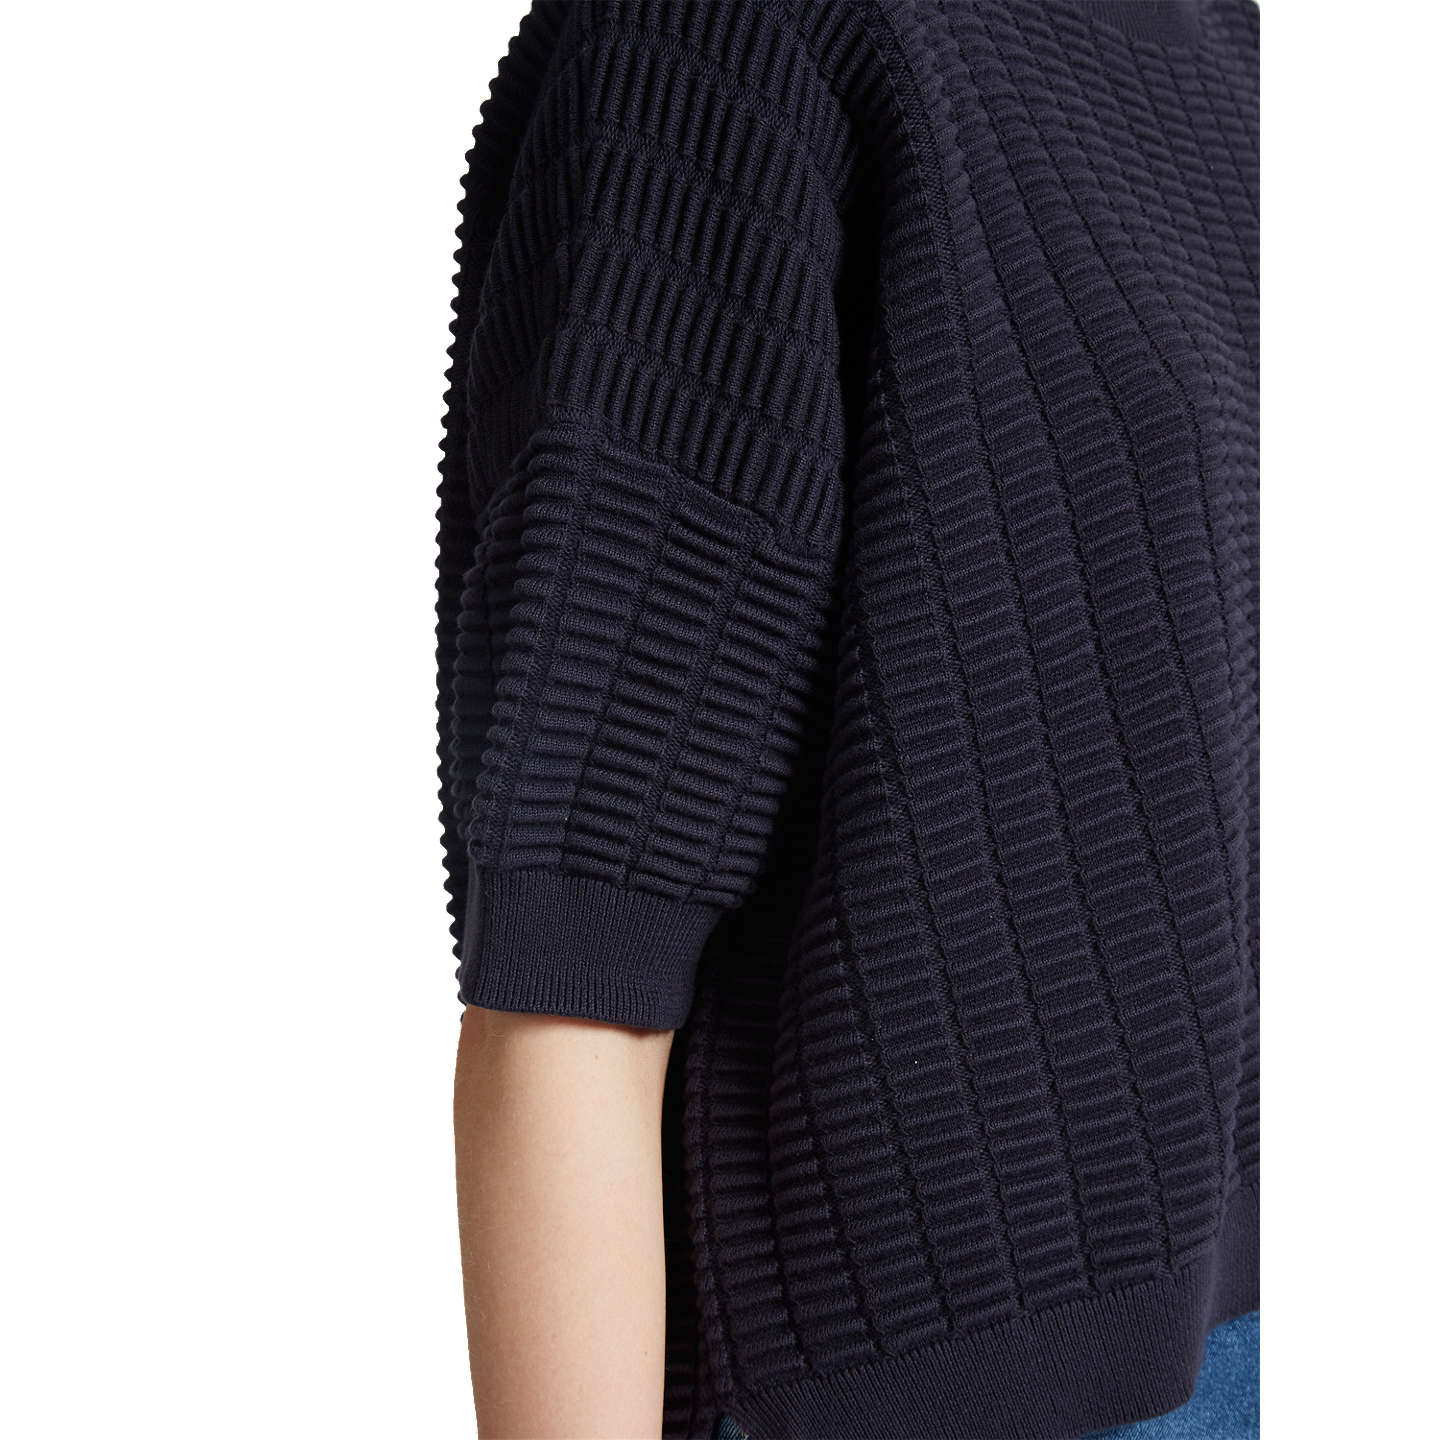 BuyFrench Connection Ladder Mozart Round Neck Jumper, Utility Blue, XS-S Online at johnlewis.com